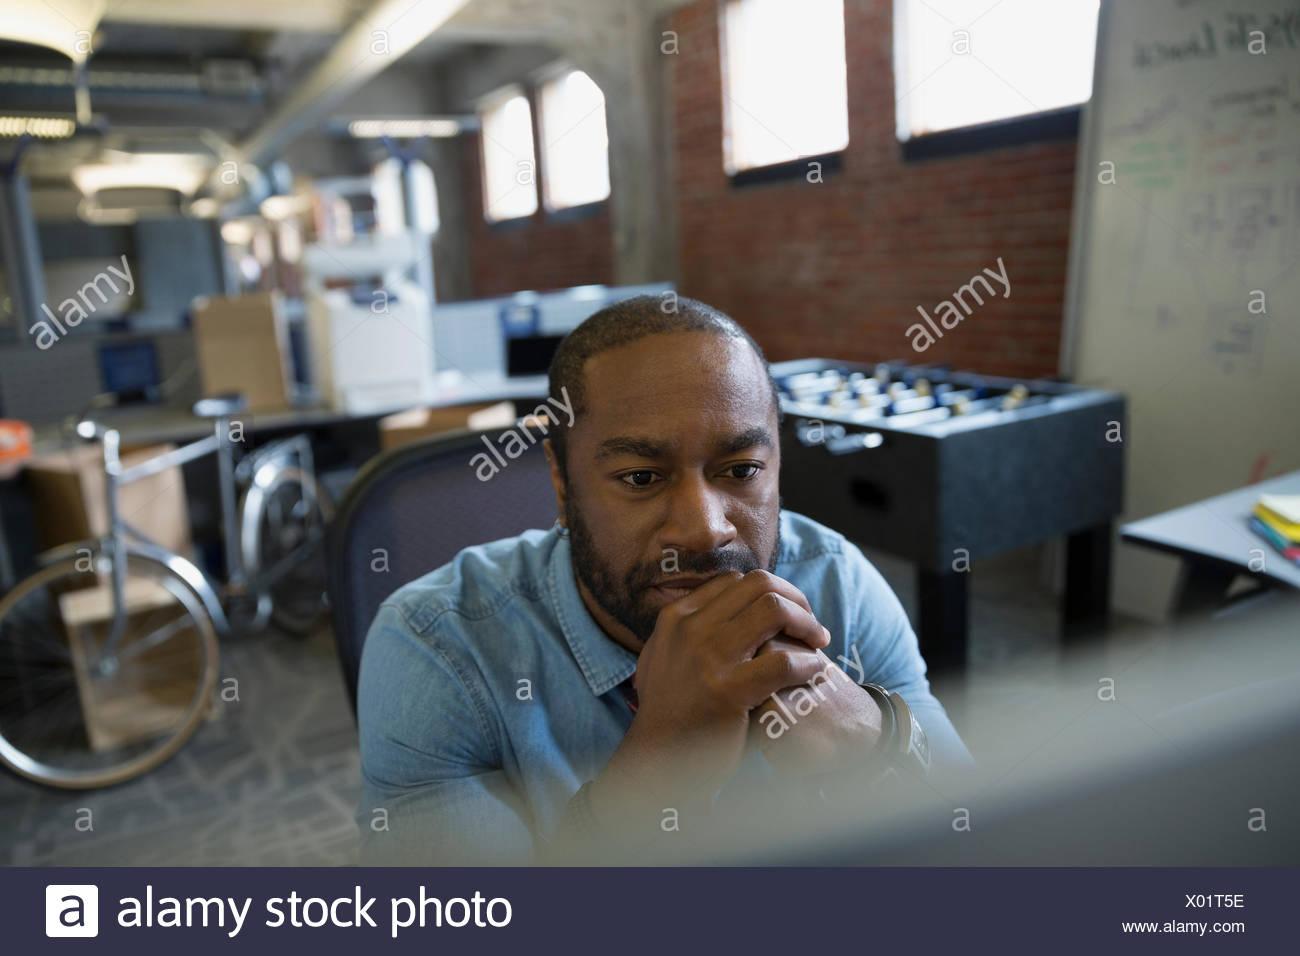 Serious entrepreneur working at computer in new office - Stock Image